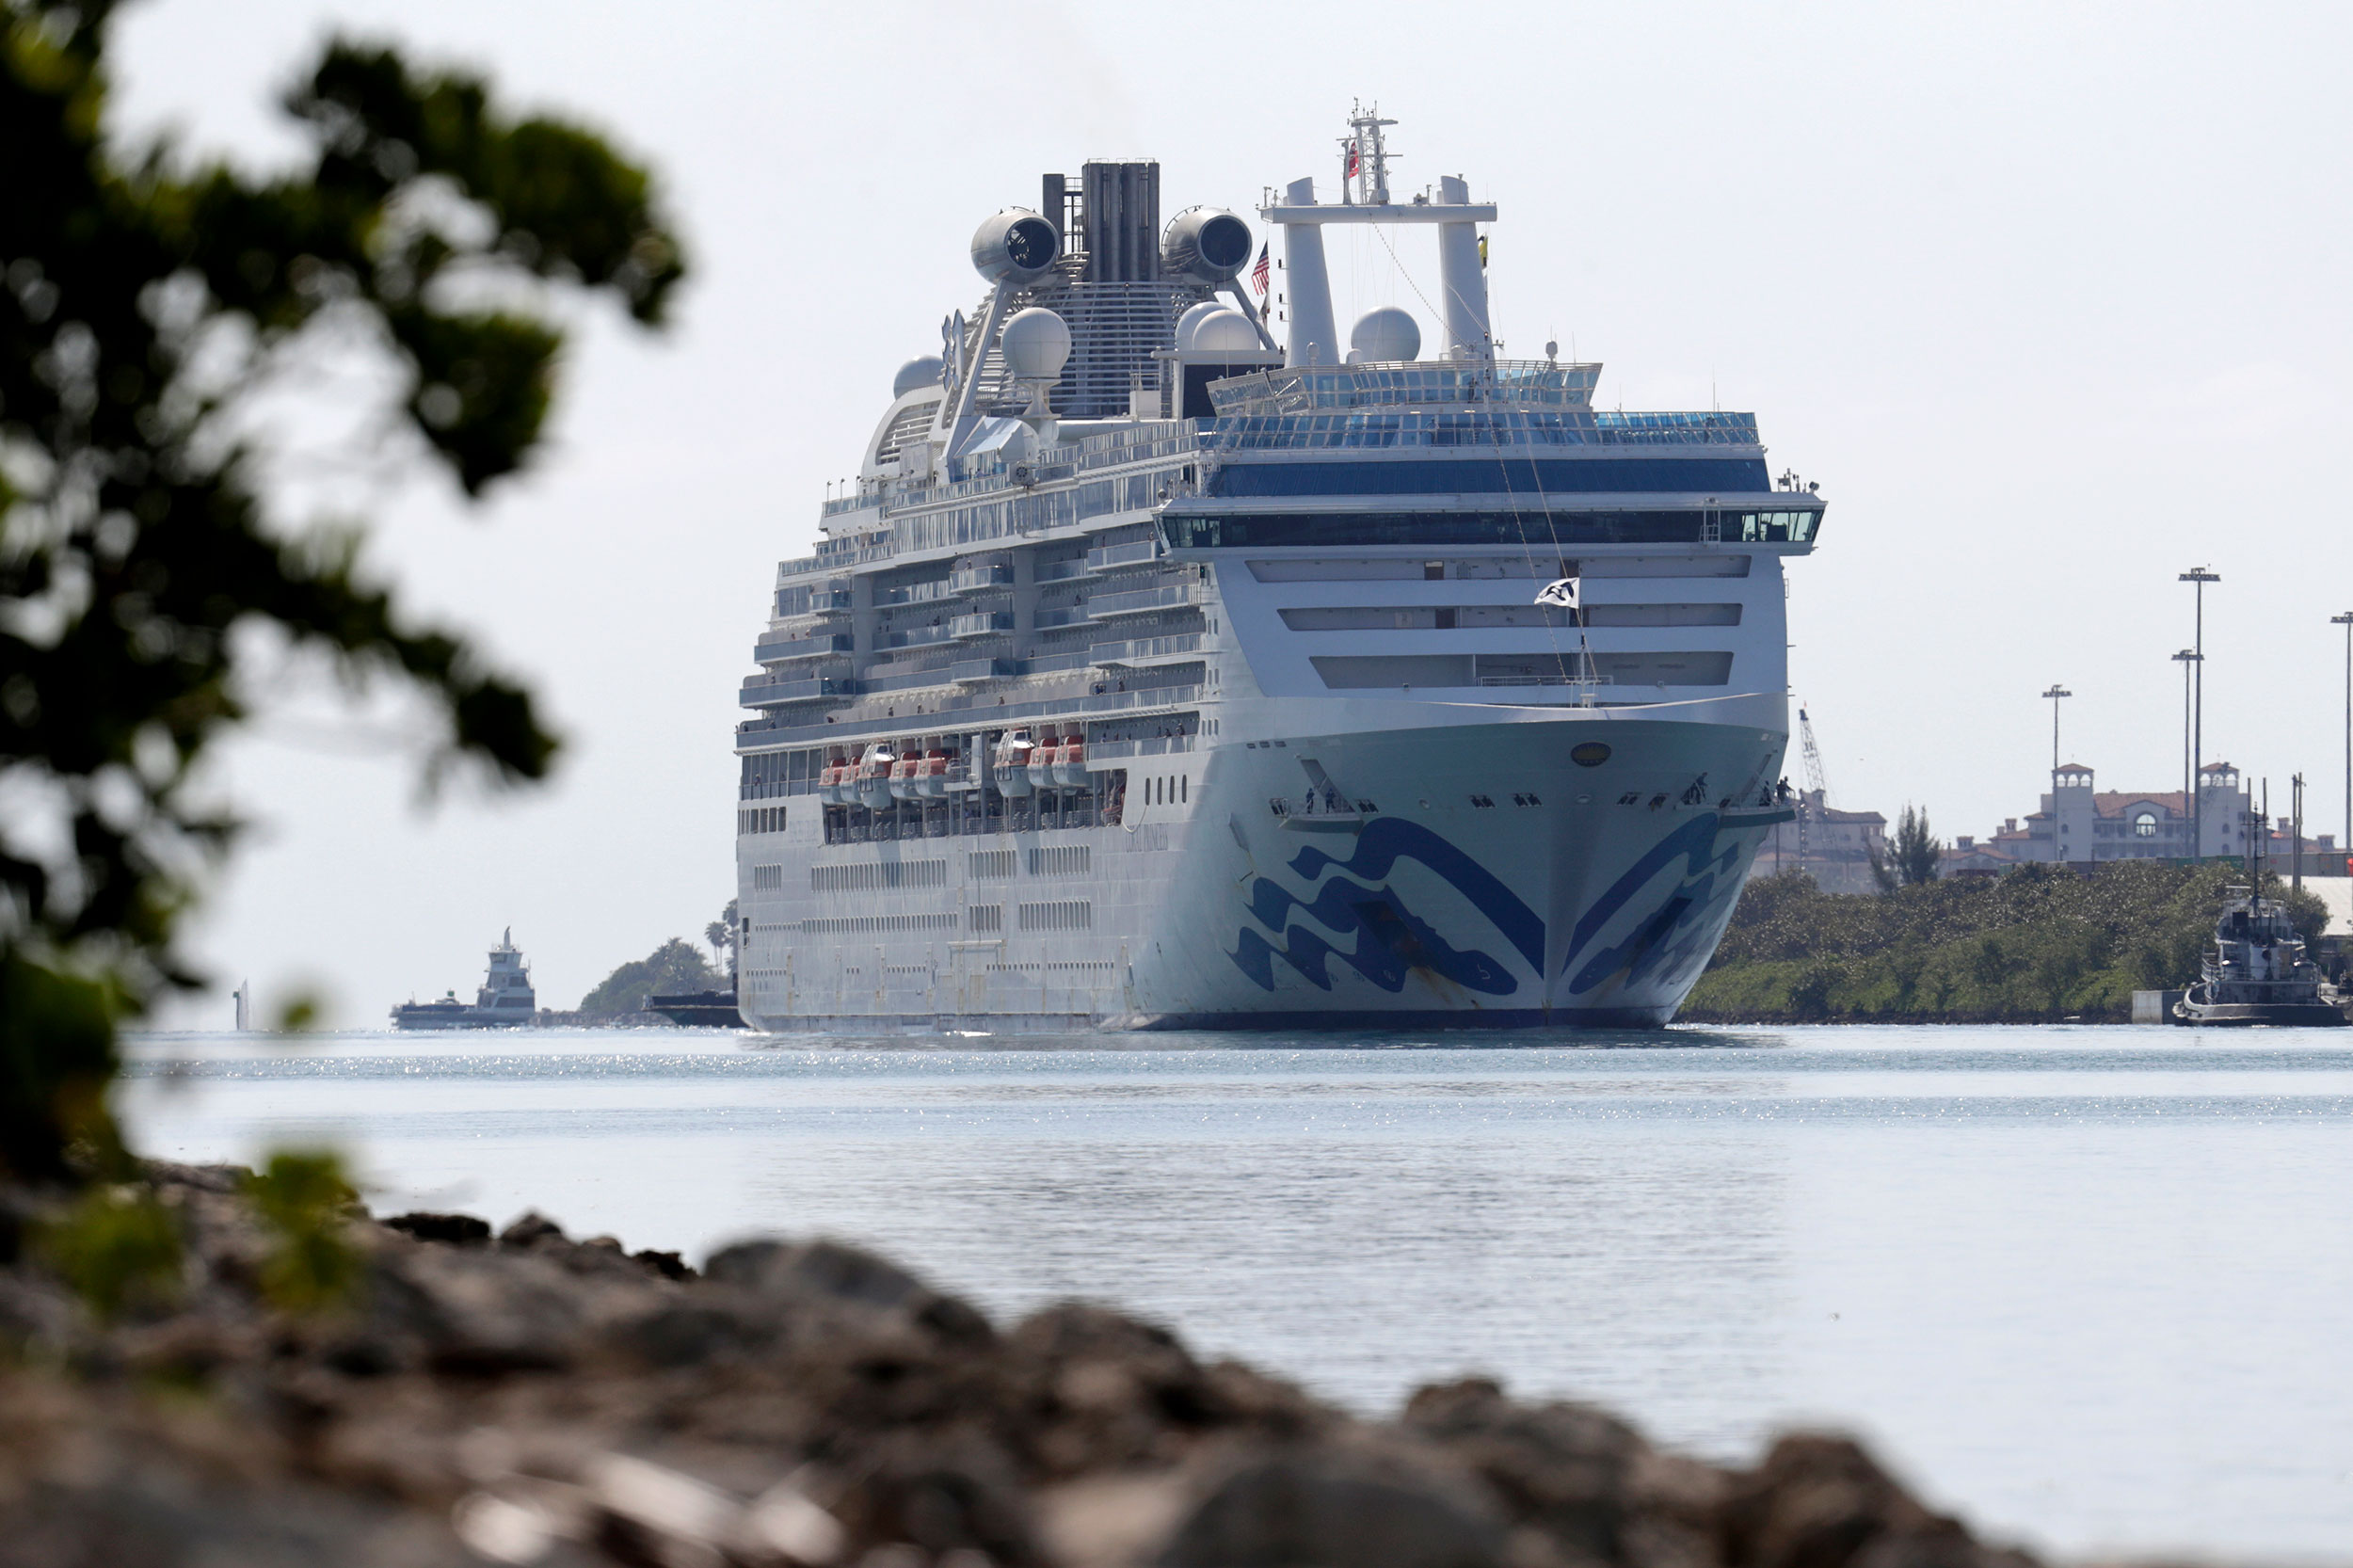 Coral Princess docks in Miami with 2 dead and several ill of coronavirus, after ports shunned it for days